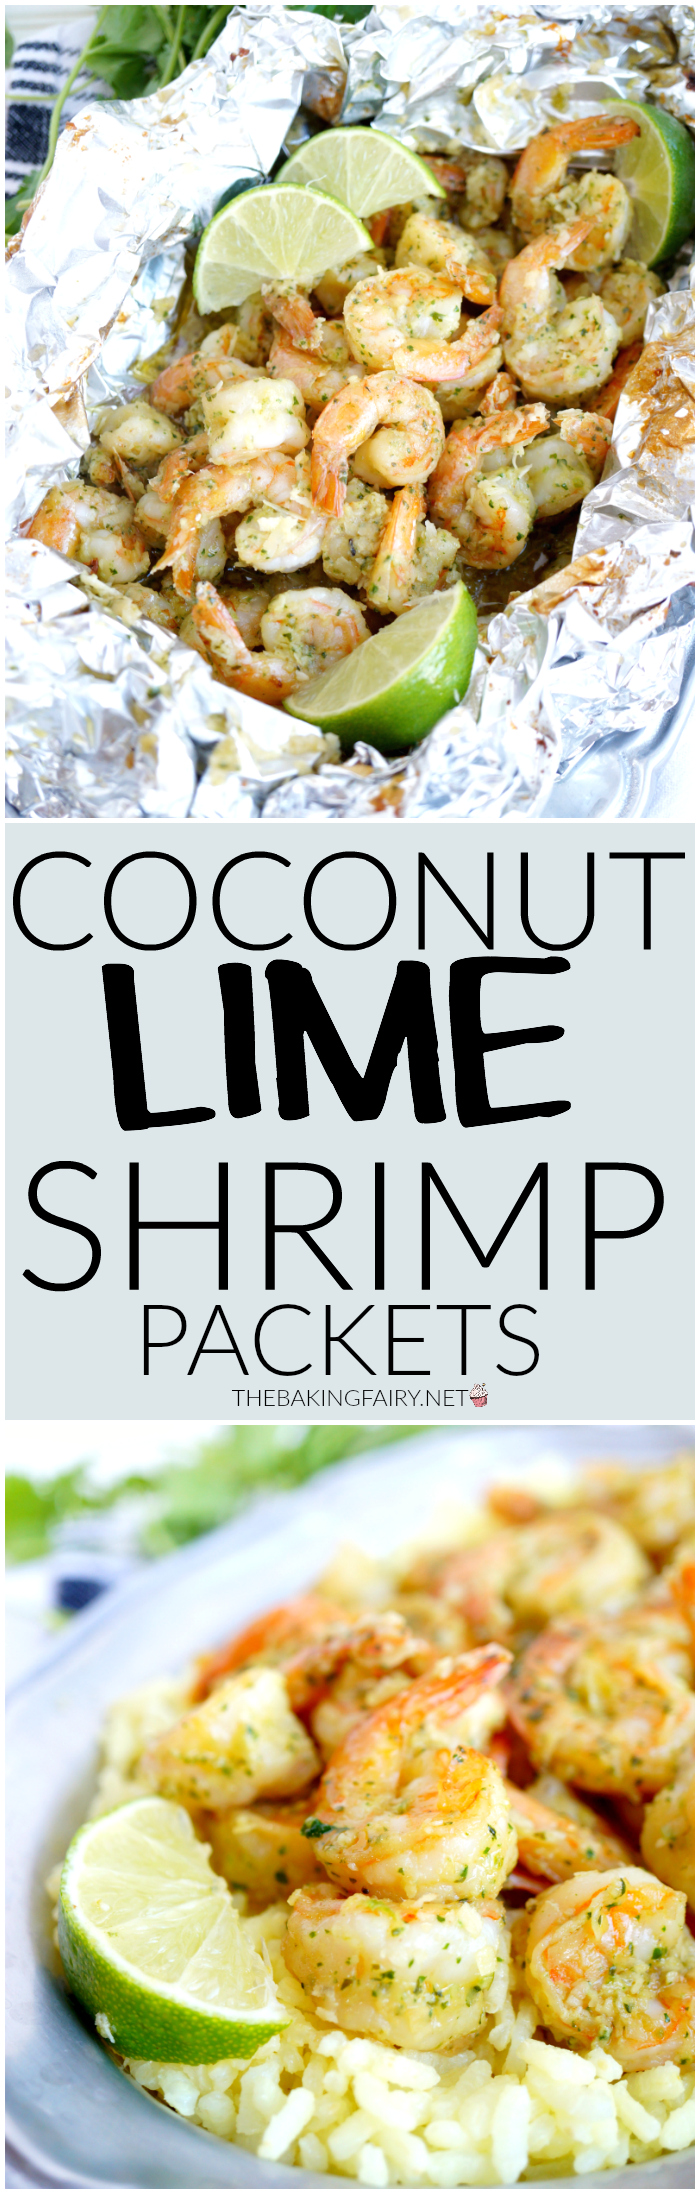 coconut lime shrimp packets | The Baking Fairy